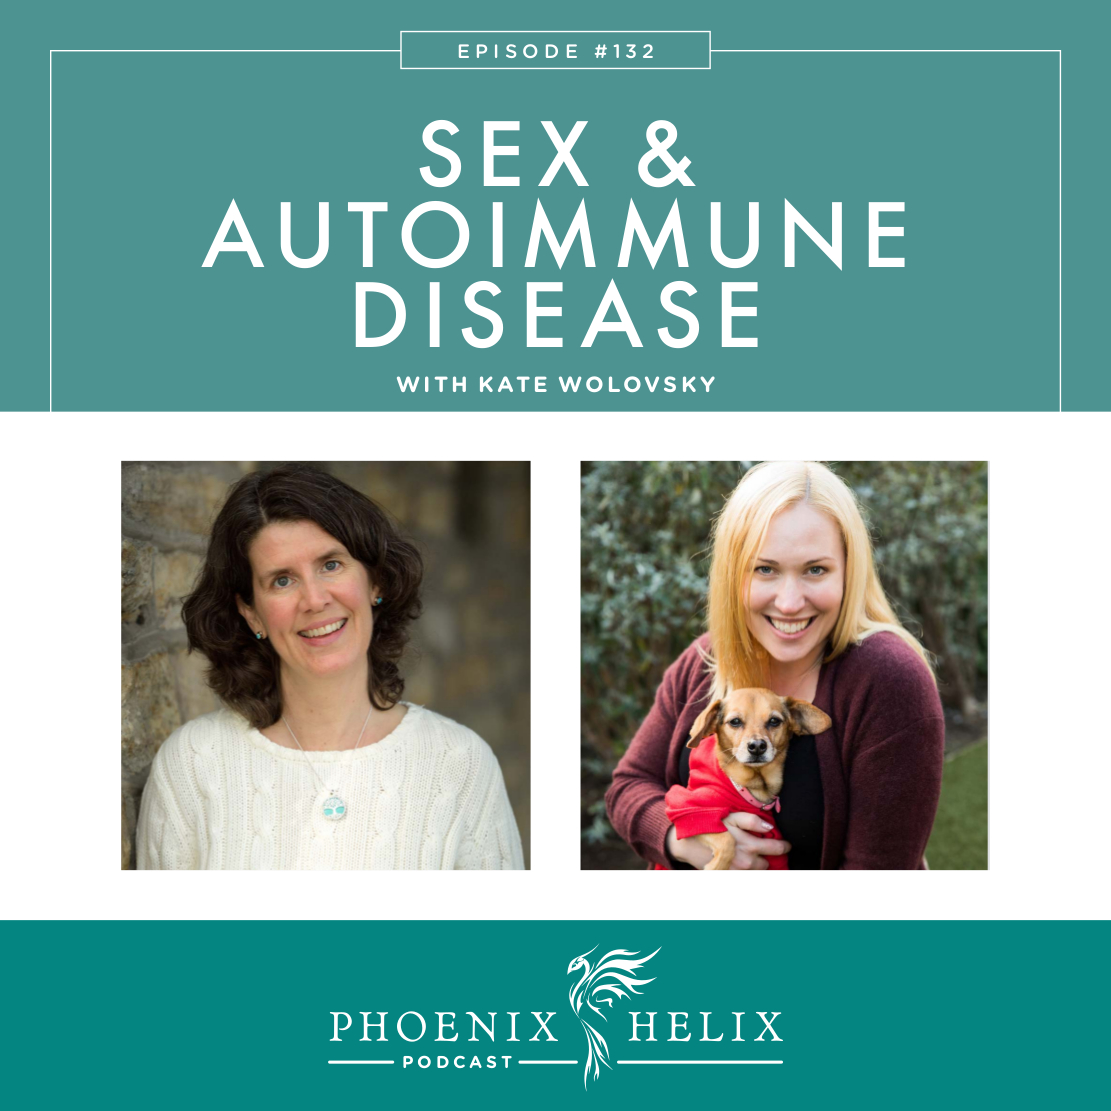 Sex and Autoimmune Disease with Kate Wolovsky | Phoenix Helix Podcast